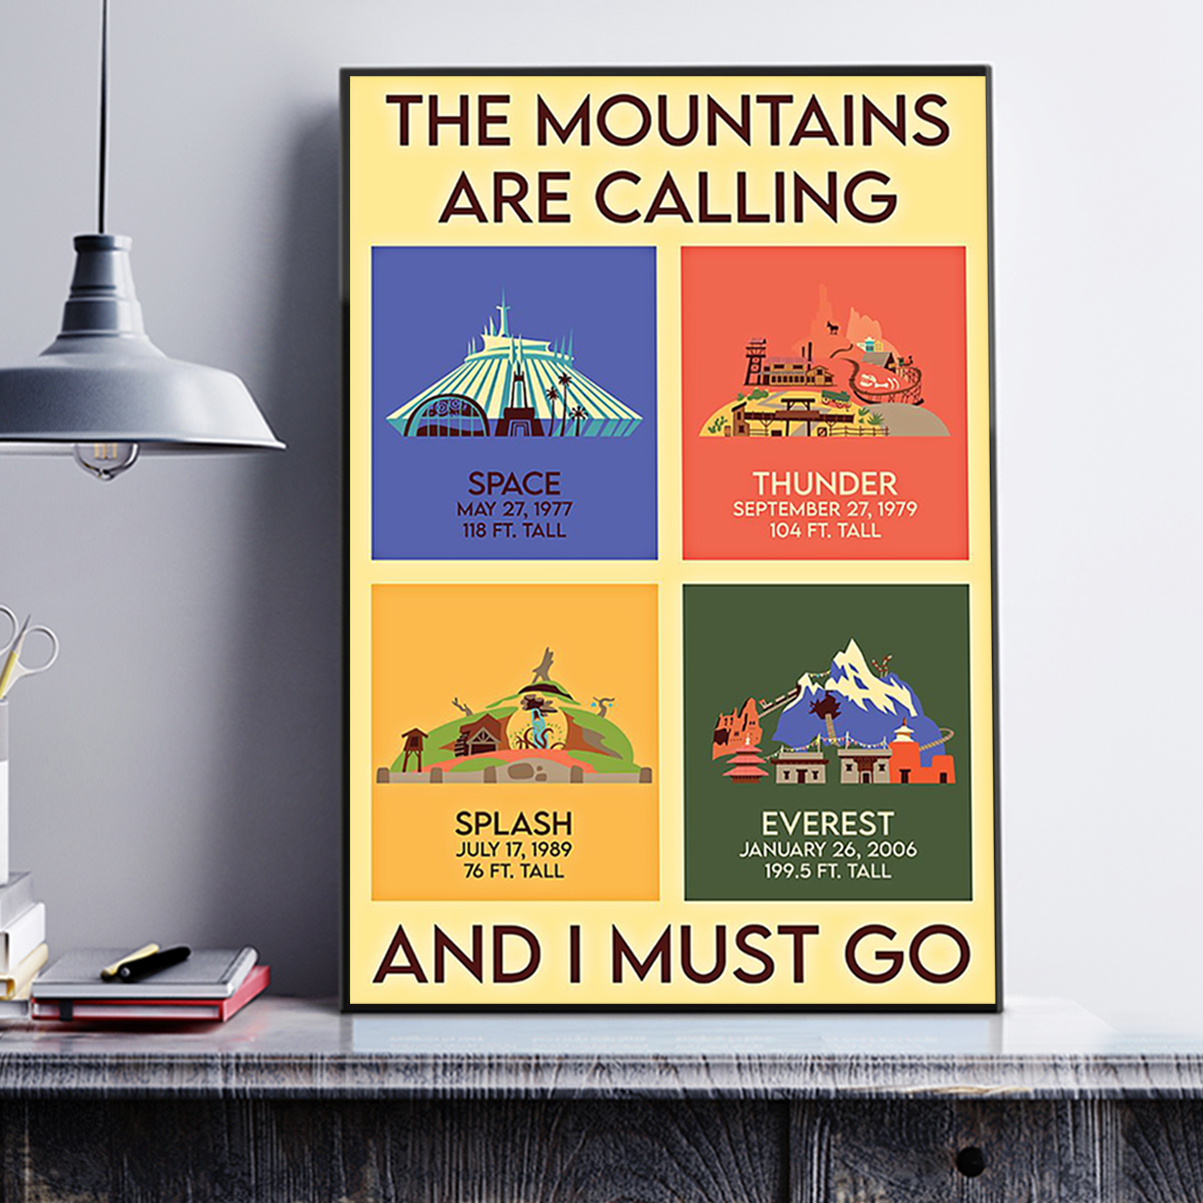 The mountains are calling and I must go poster A3